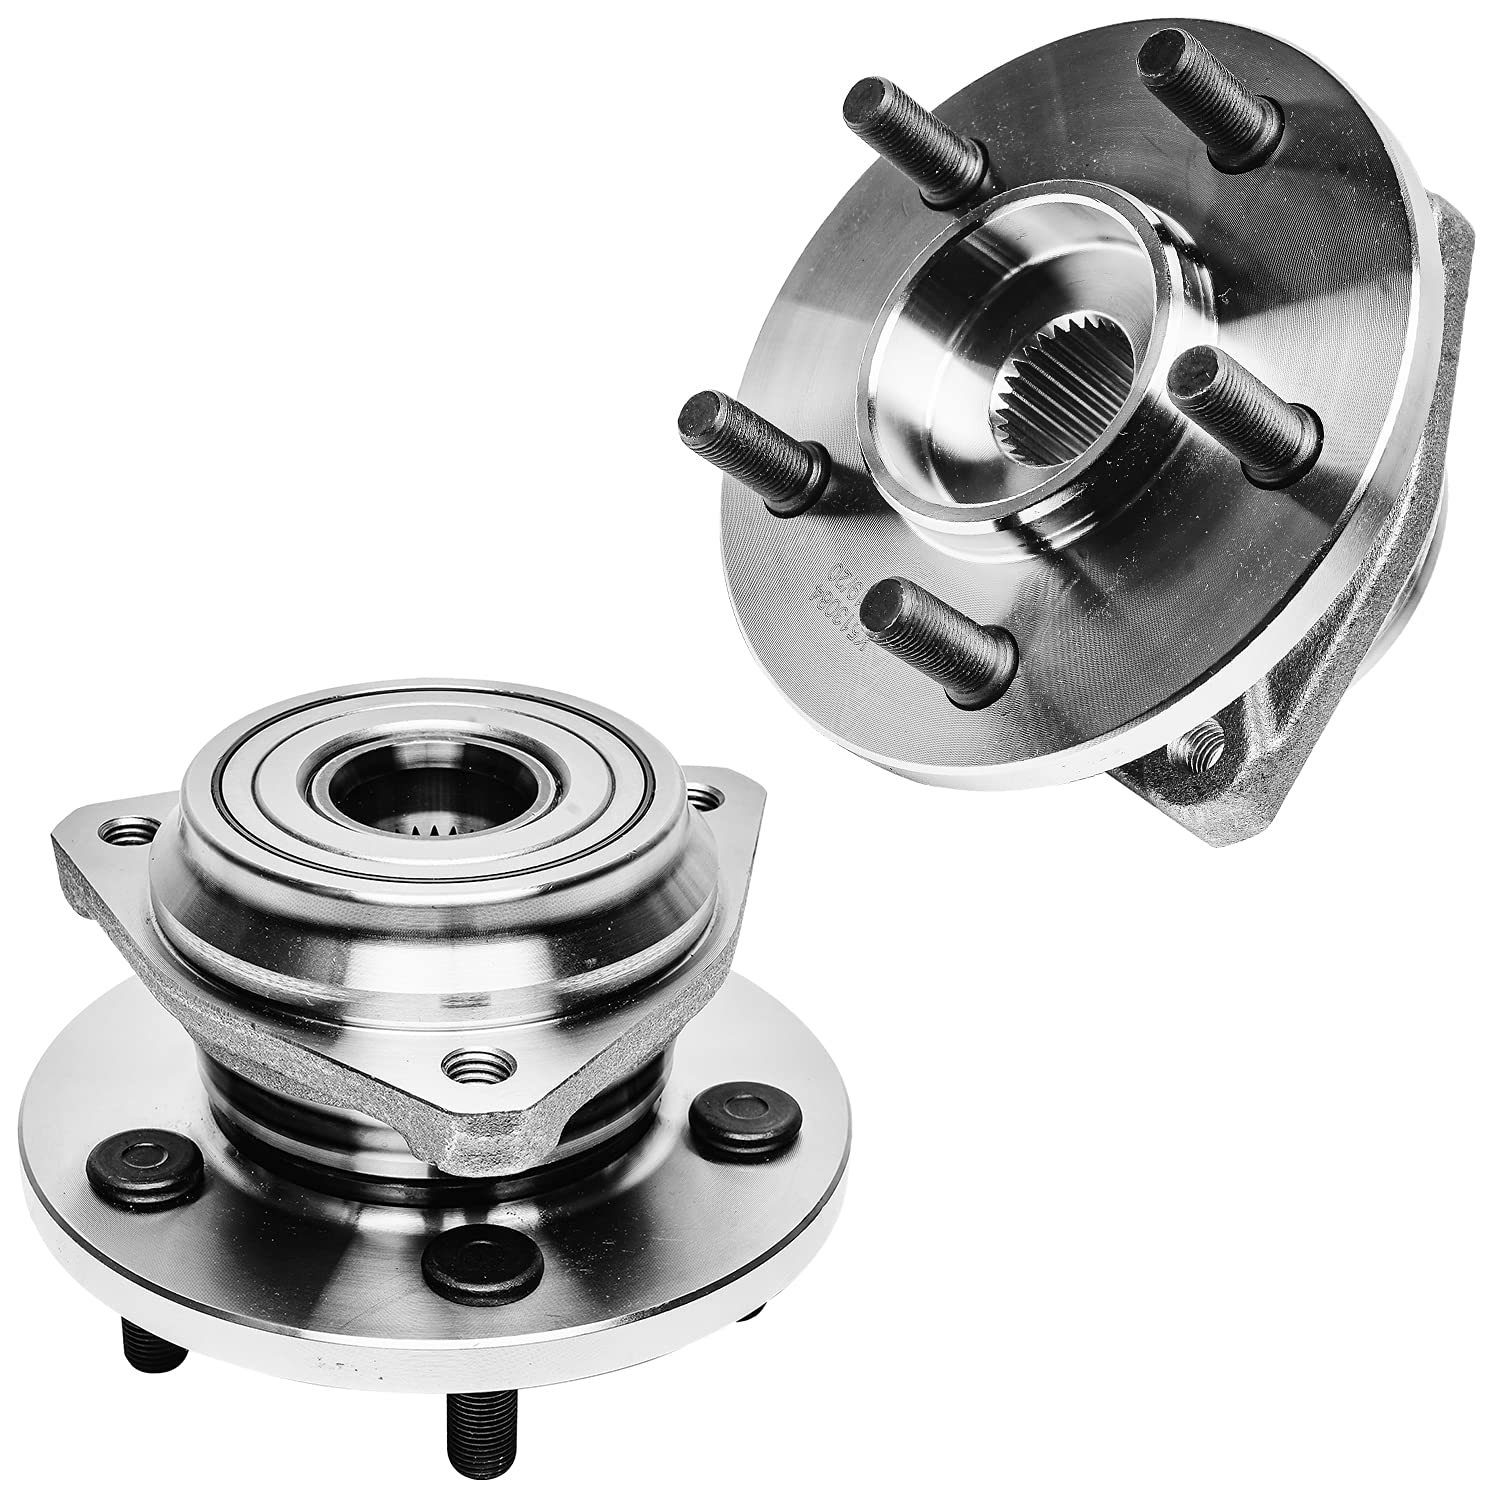 Detroit Axle - Front Wheel Hub and Bearings Assembly Replacement for Jeep Grand Cherokee Wrangler Wagoneer Comanche - 2pc Set